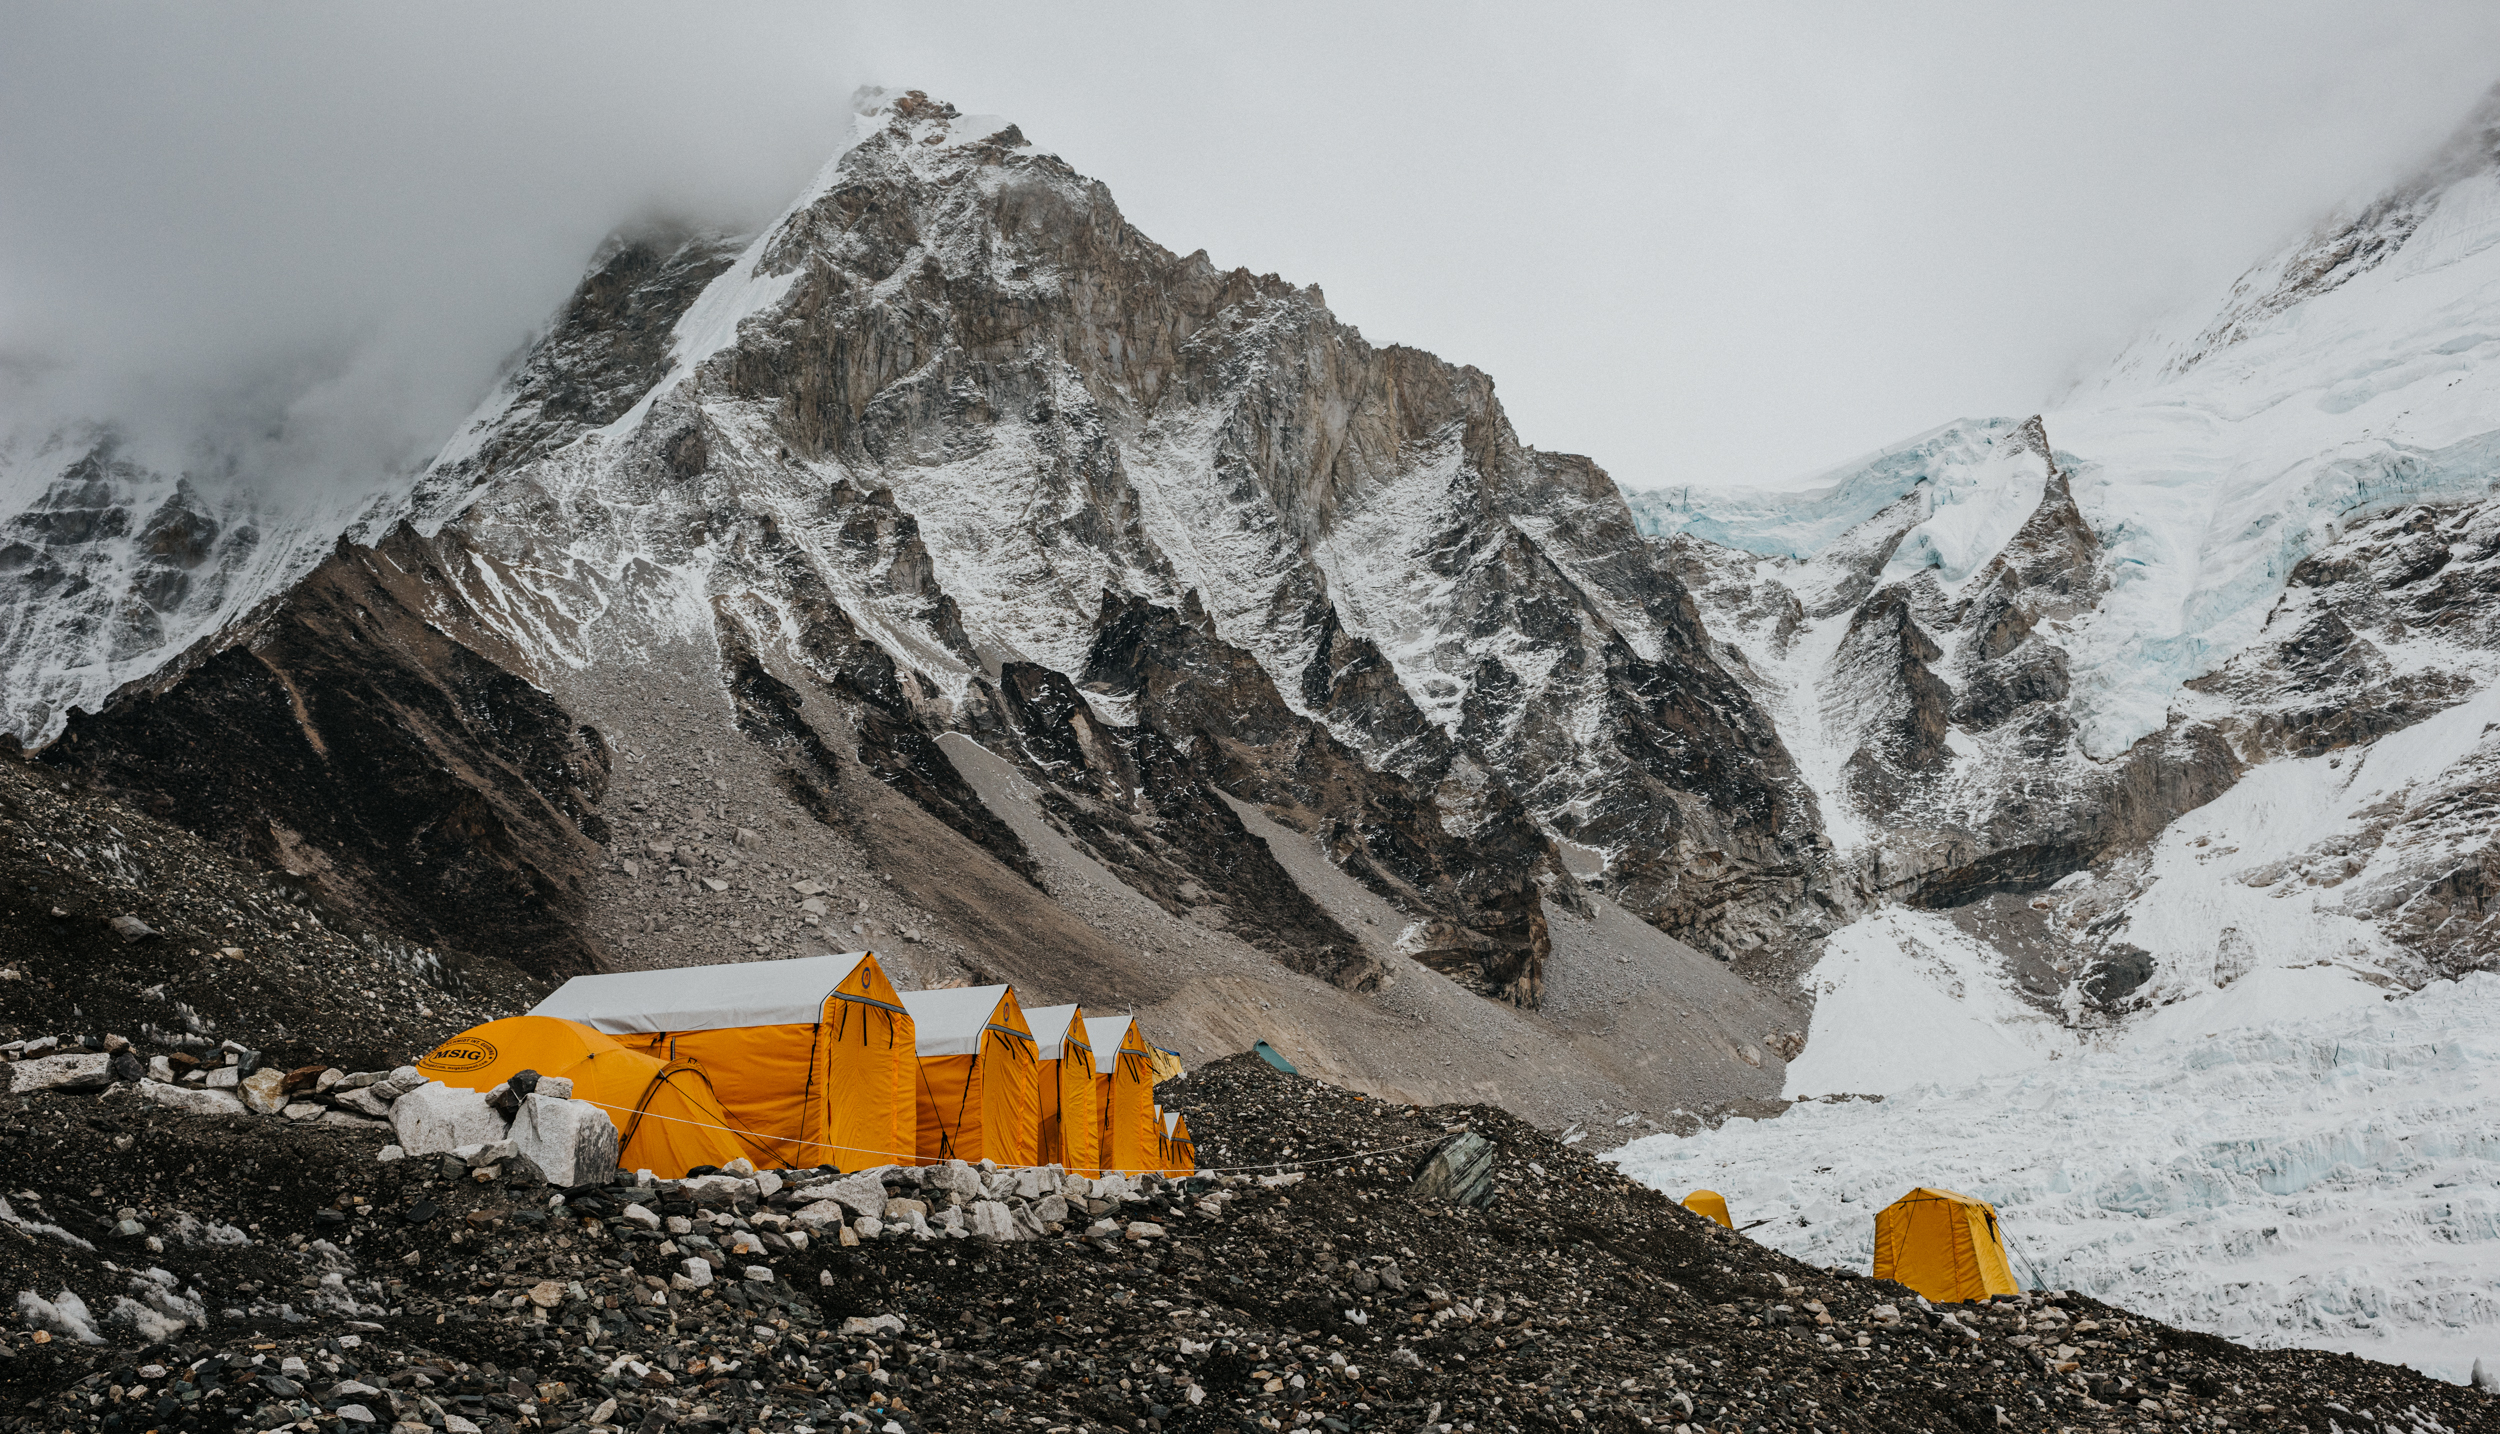 Nepal_EverestBaseCamp_2019_TaraShupe_Photography_DSC_4244.jpg